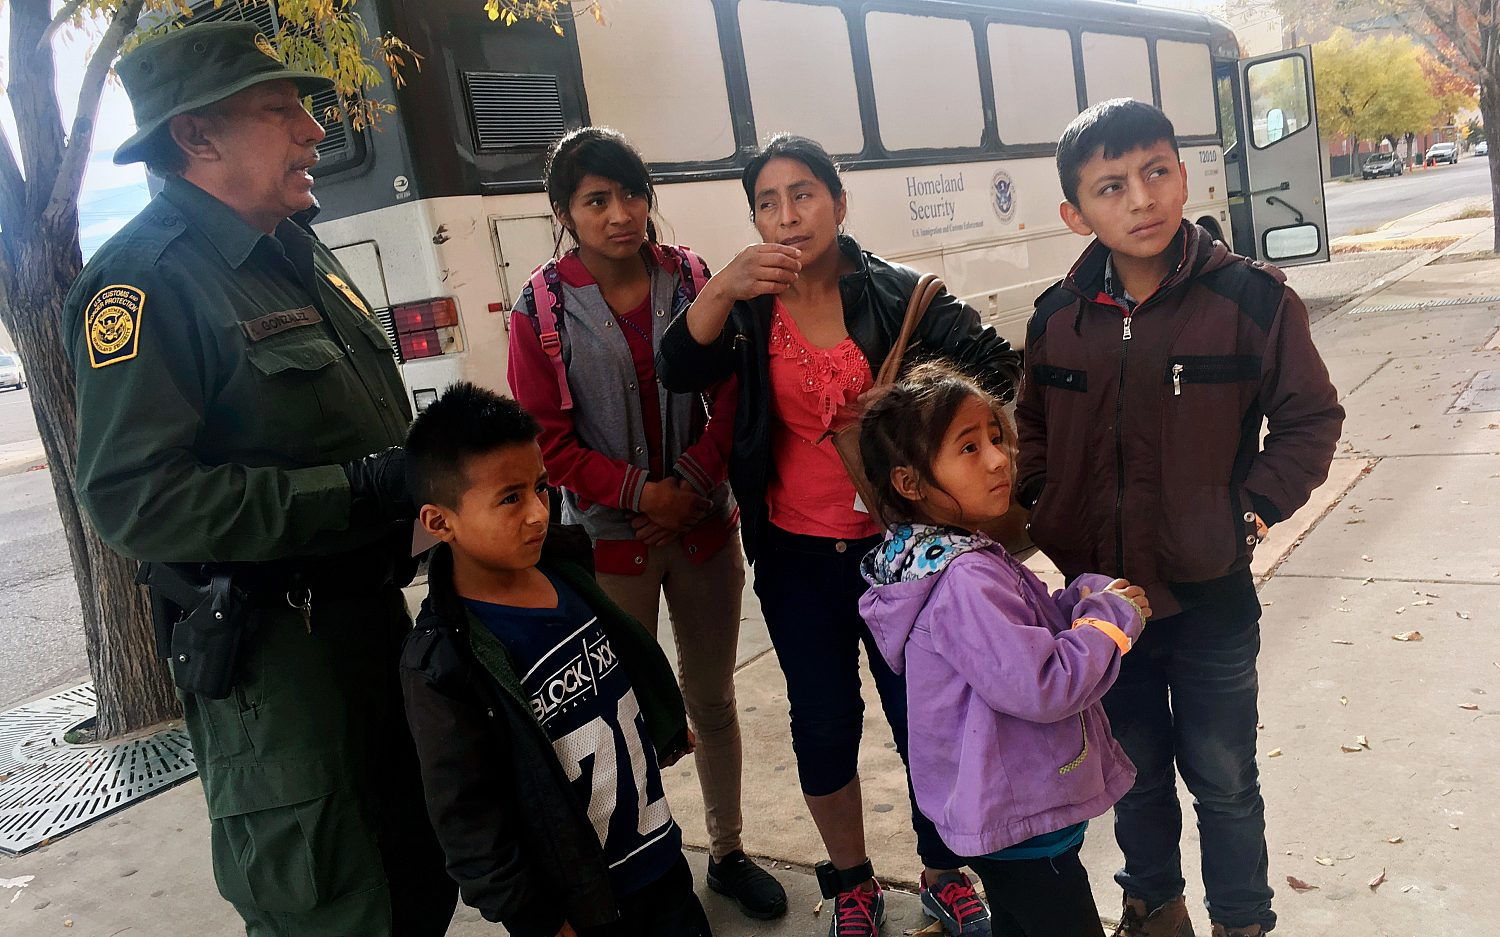 Christian compassion at the border